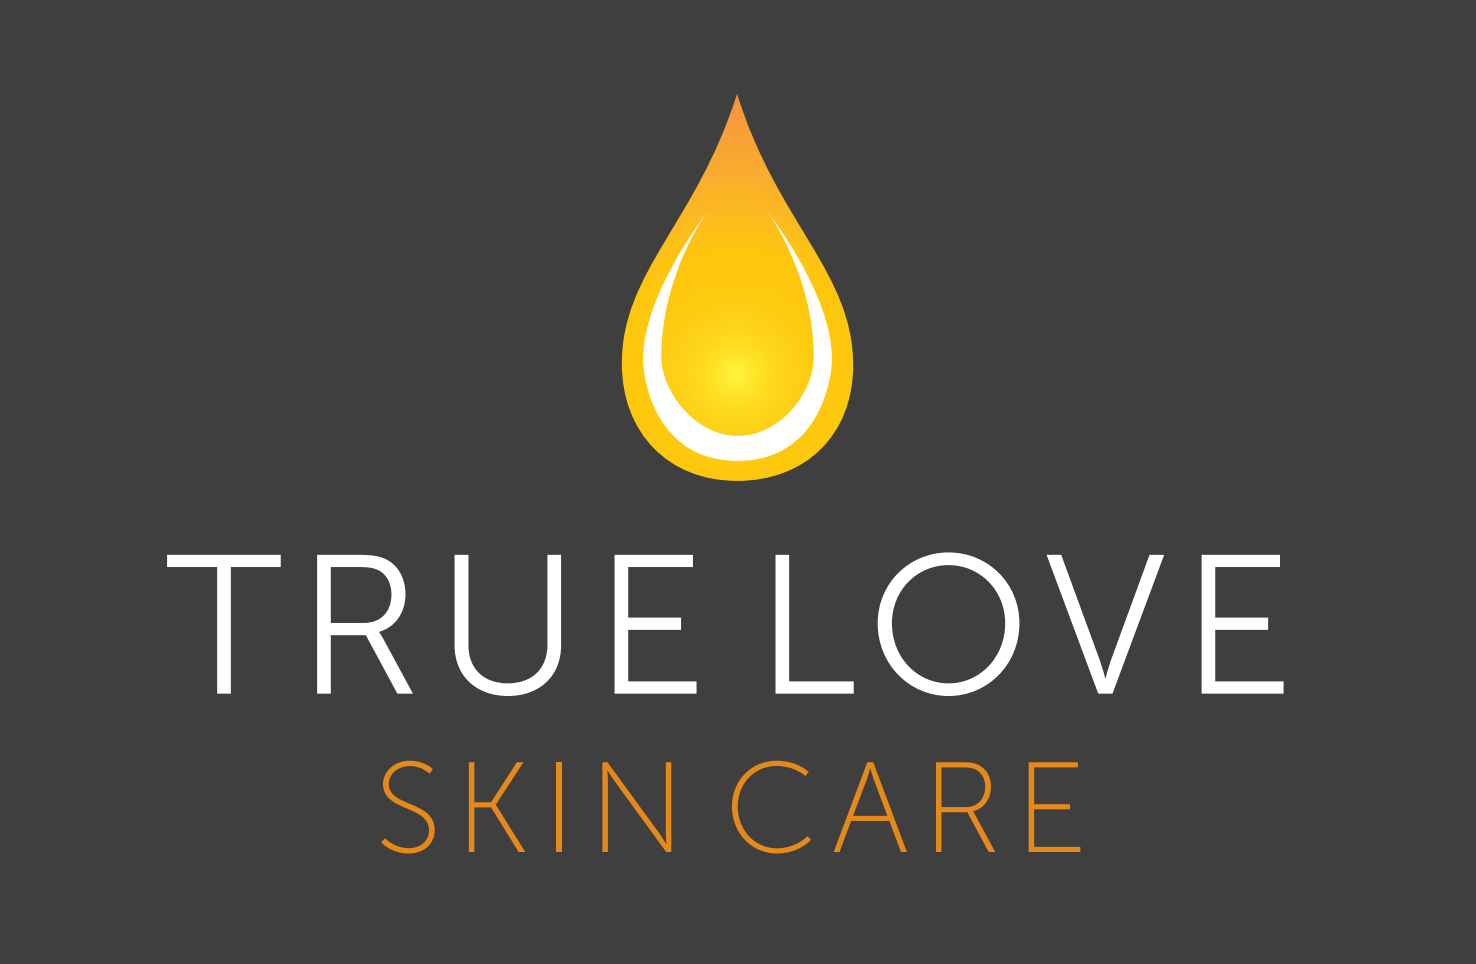 True Love Skincare